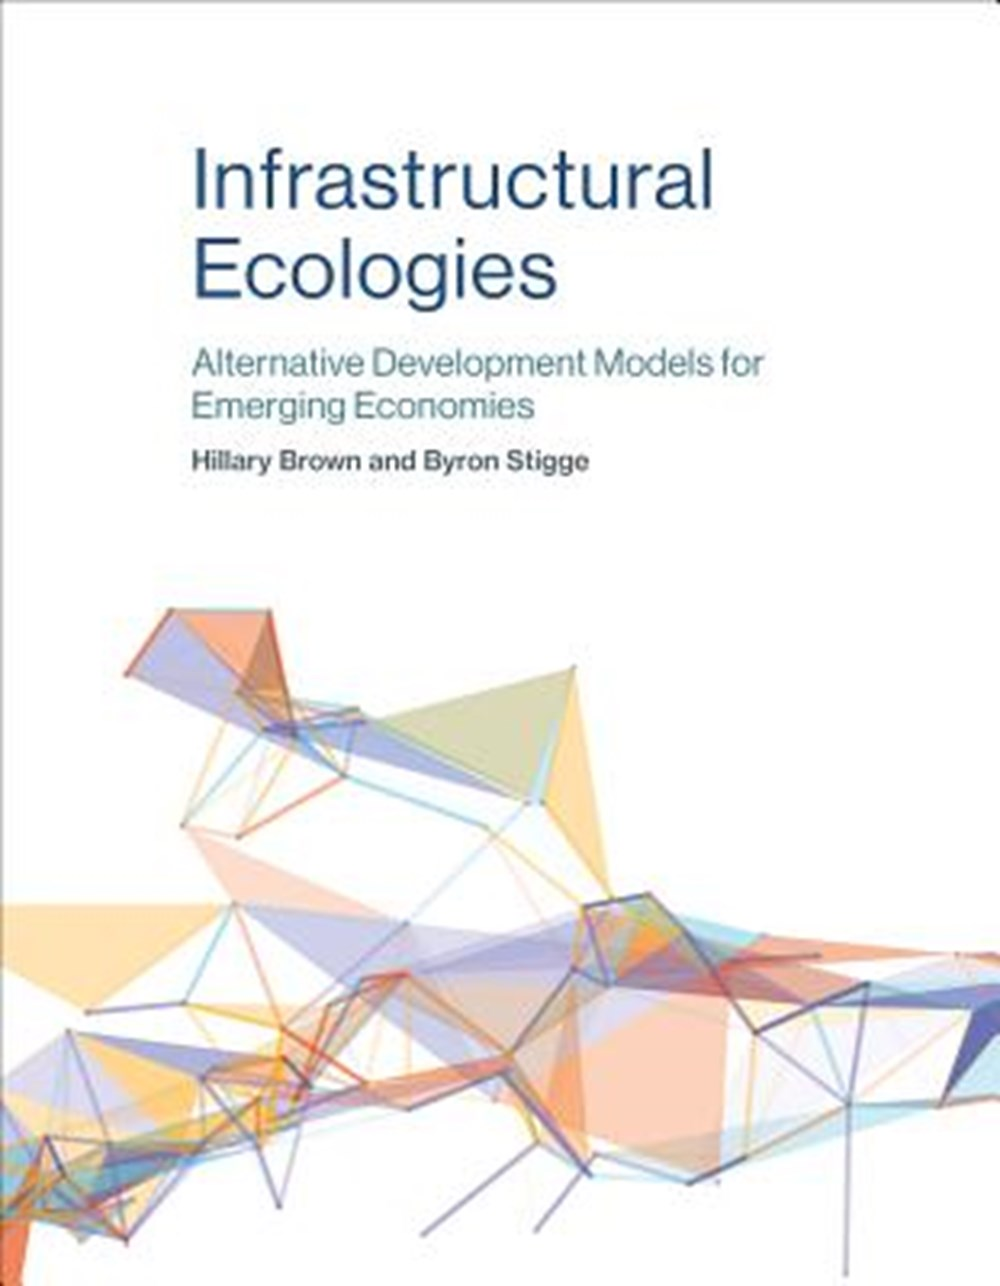 Infrastructural Ecologies Alternative Development Models for Emerging Economies